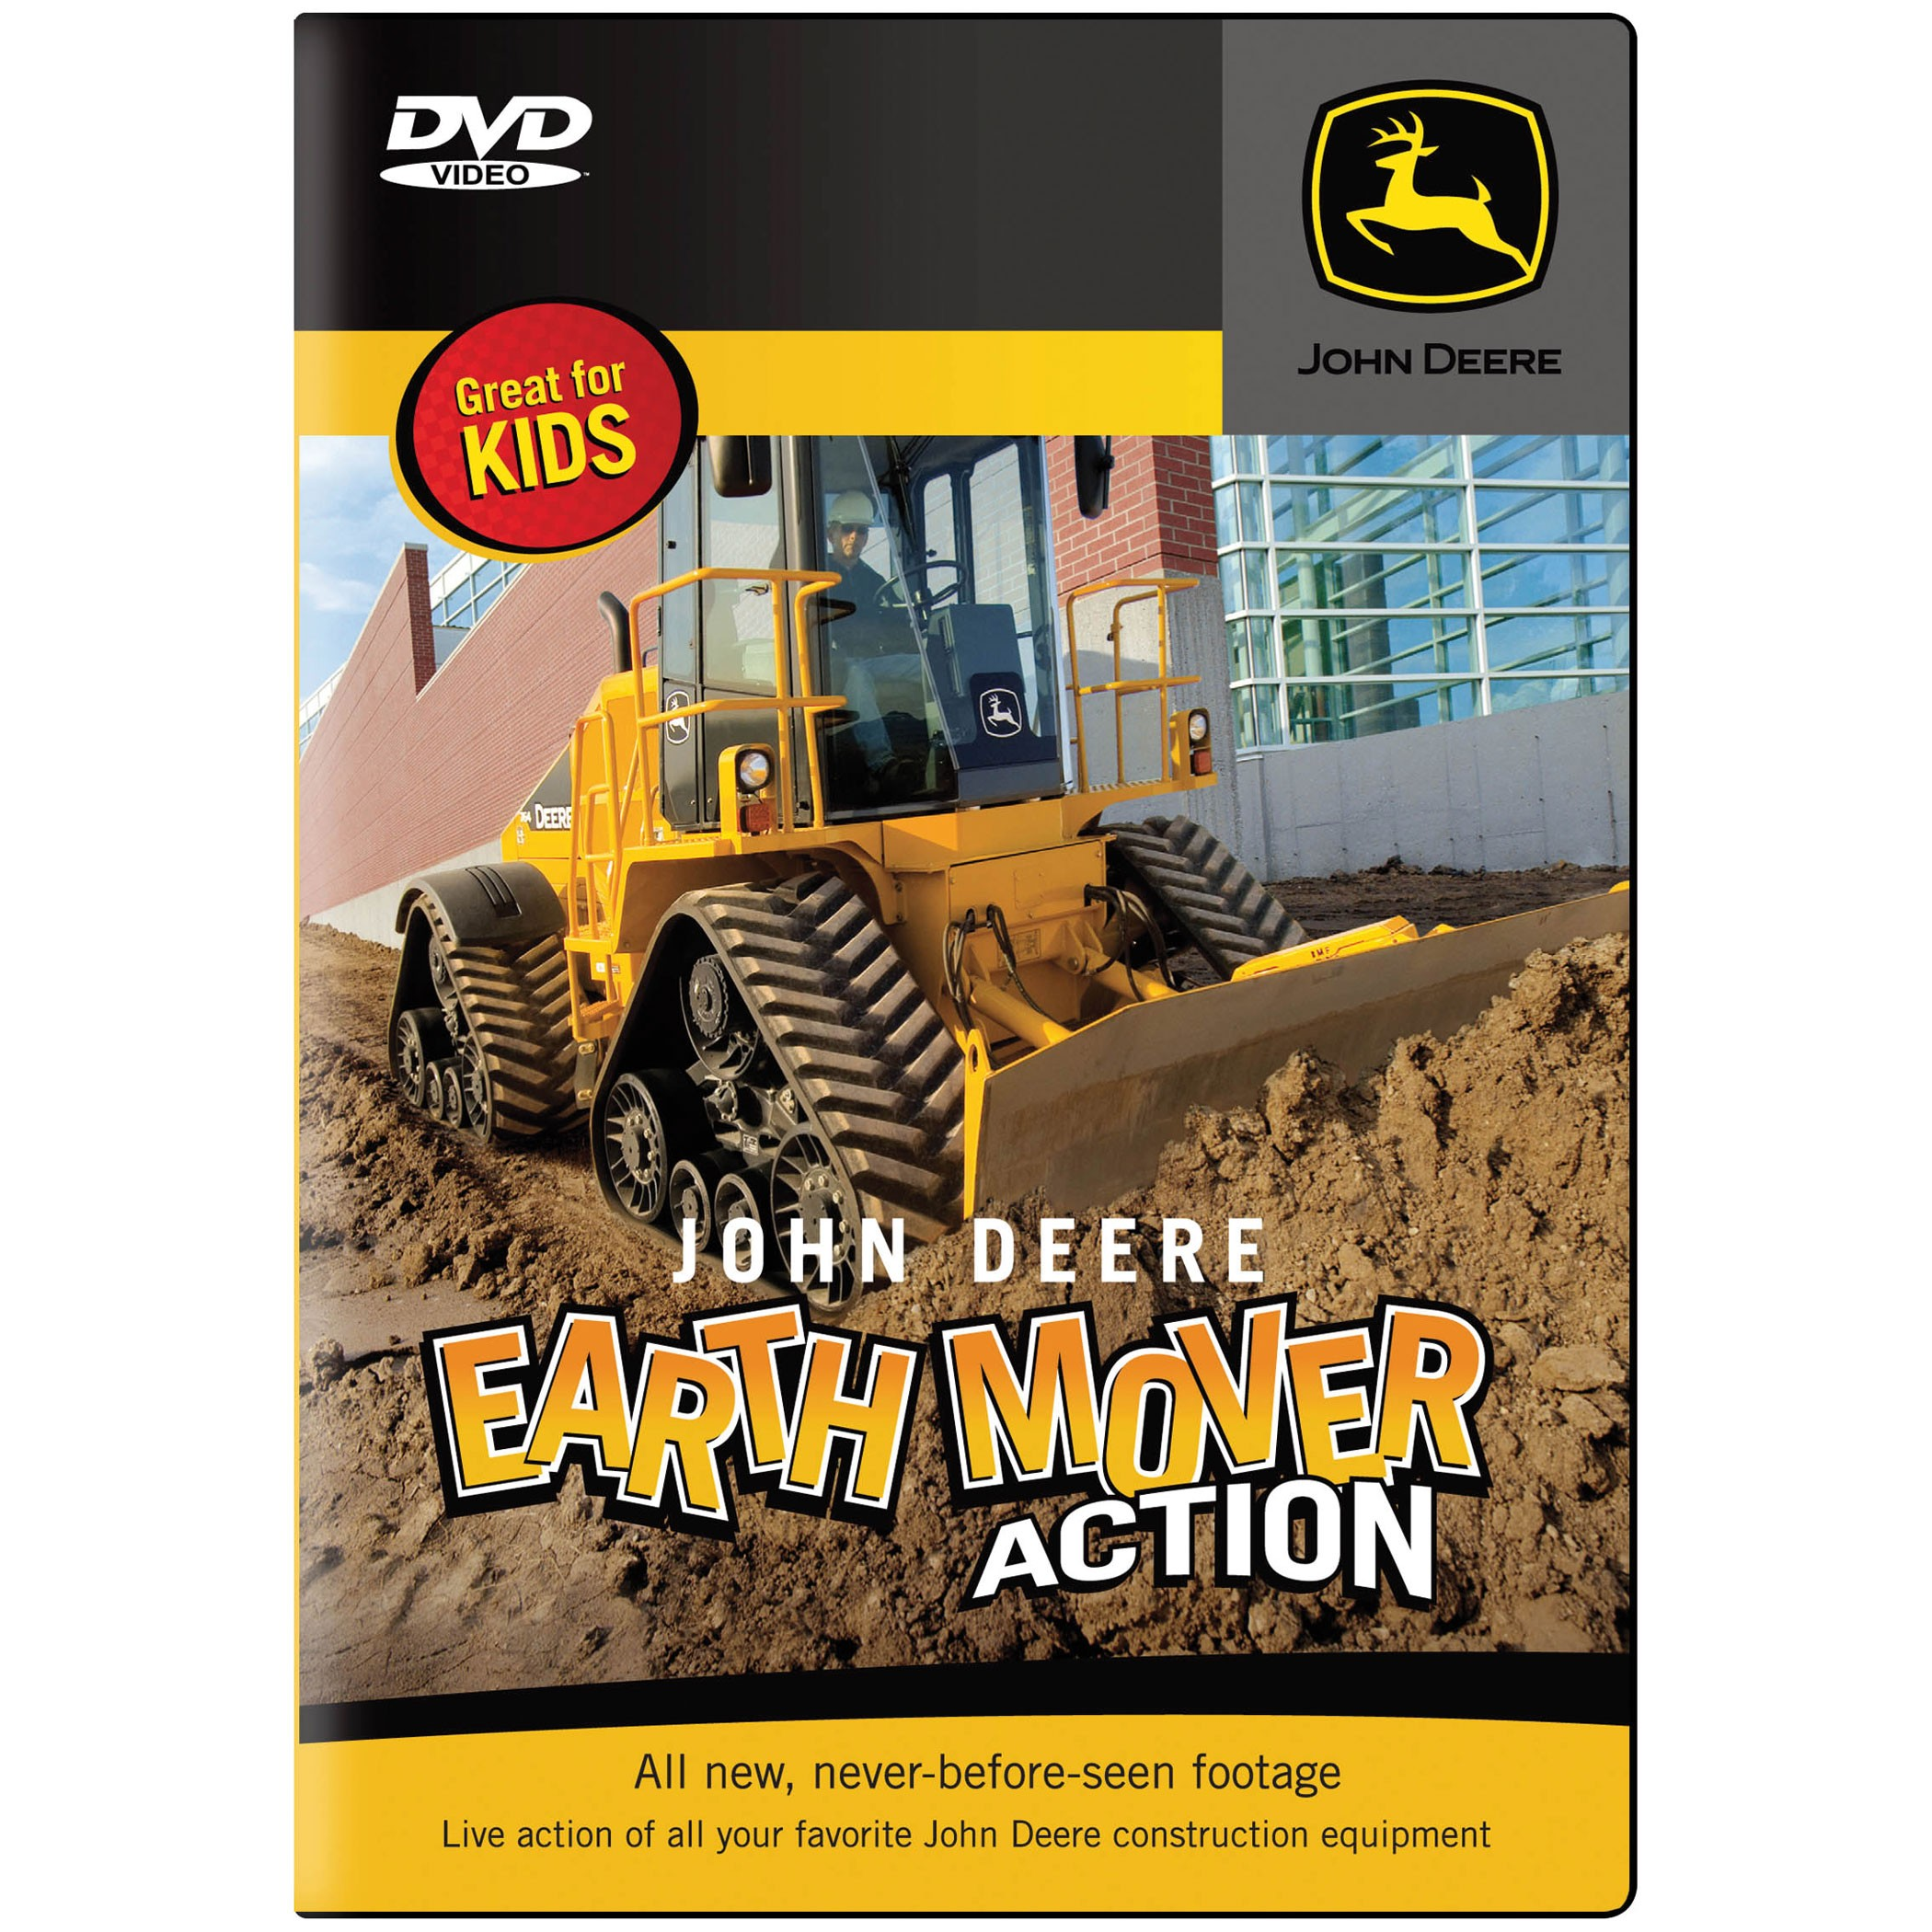 ... load rocks, and climb hills on the John Deere Earth Mover Action DVD